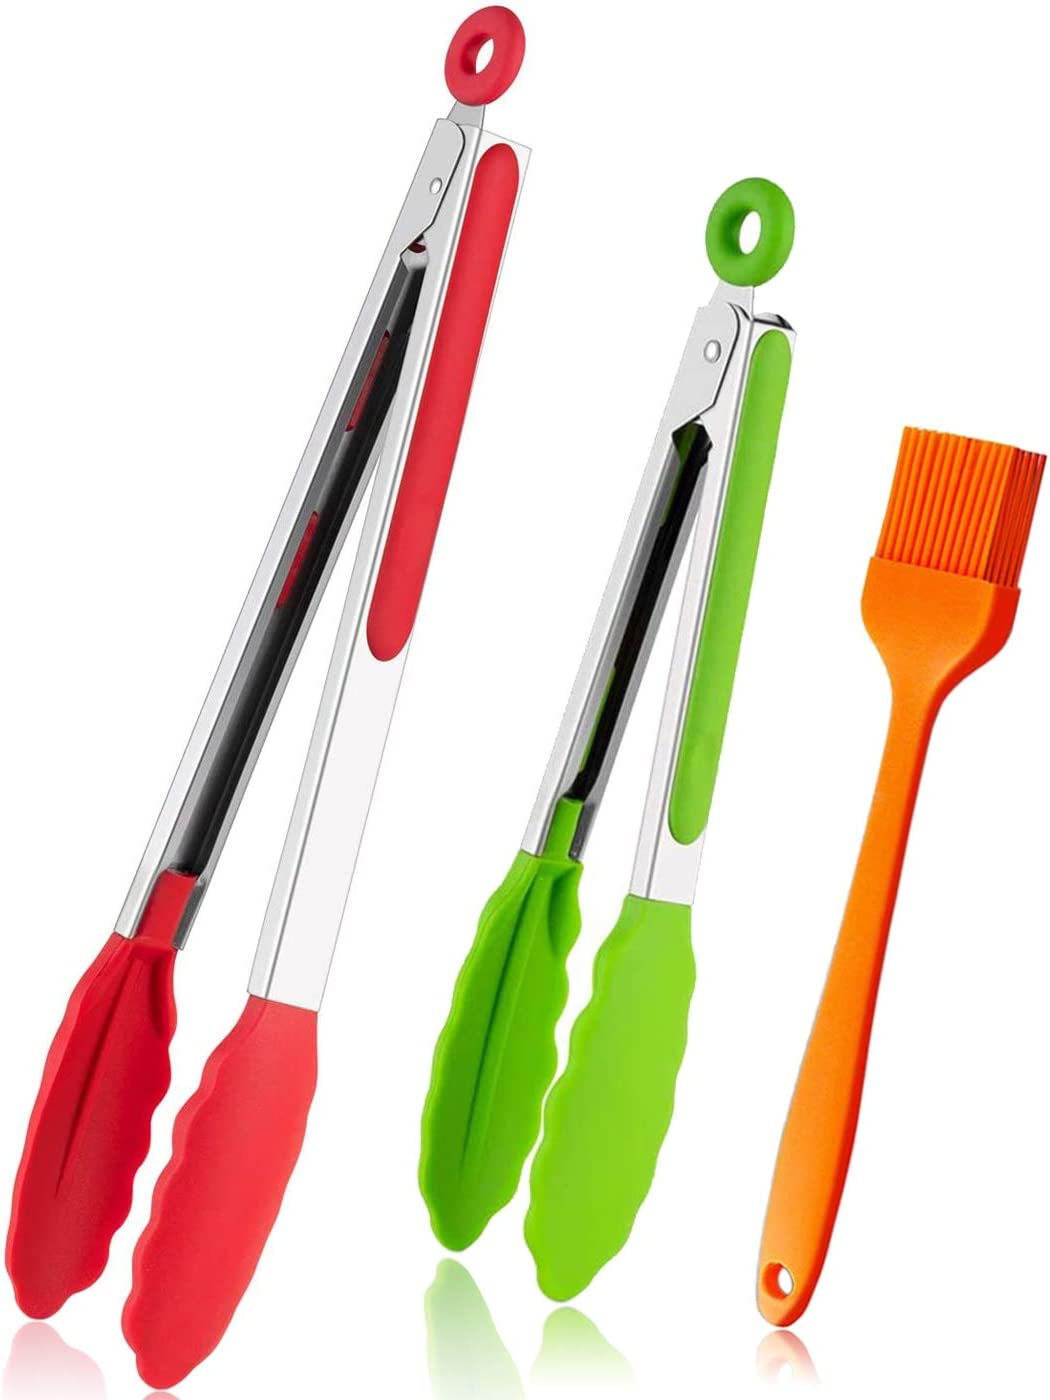 Silicone Kitchen Tongs for Cooking BBQ Tong Non Stick with Silicone Tips 12inch 7inch Set of 2 Premium Kitchen Utensils for Grilling Meat Baking